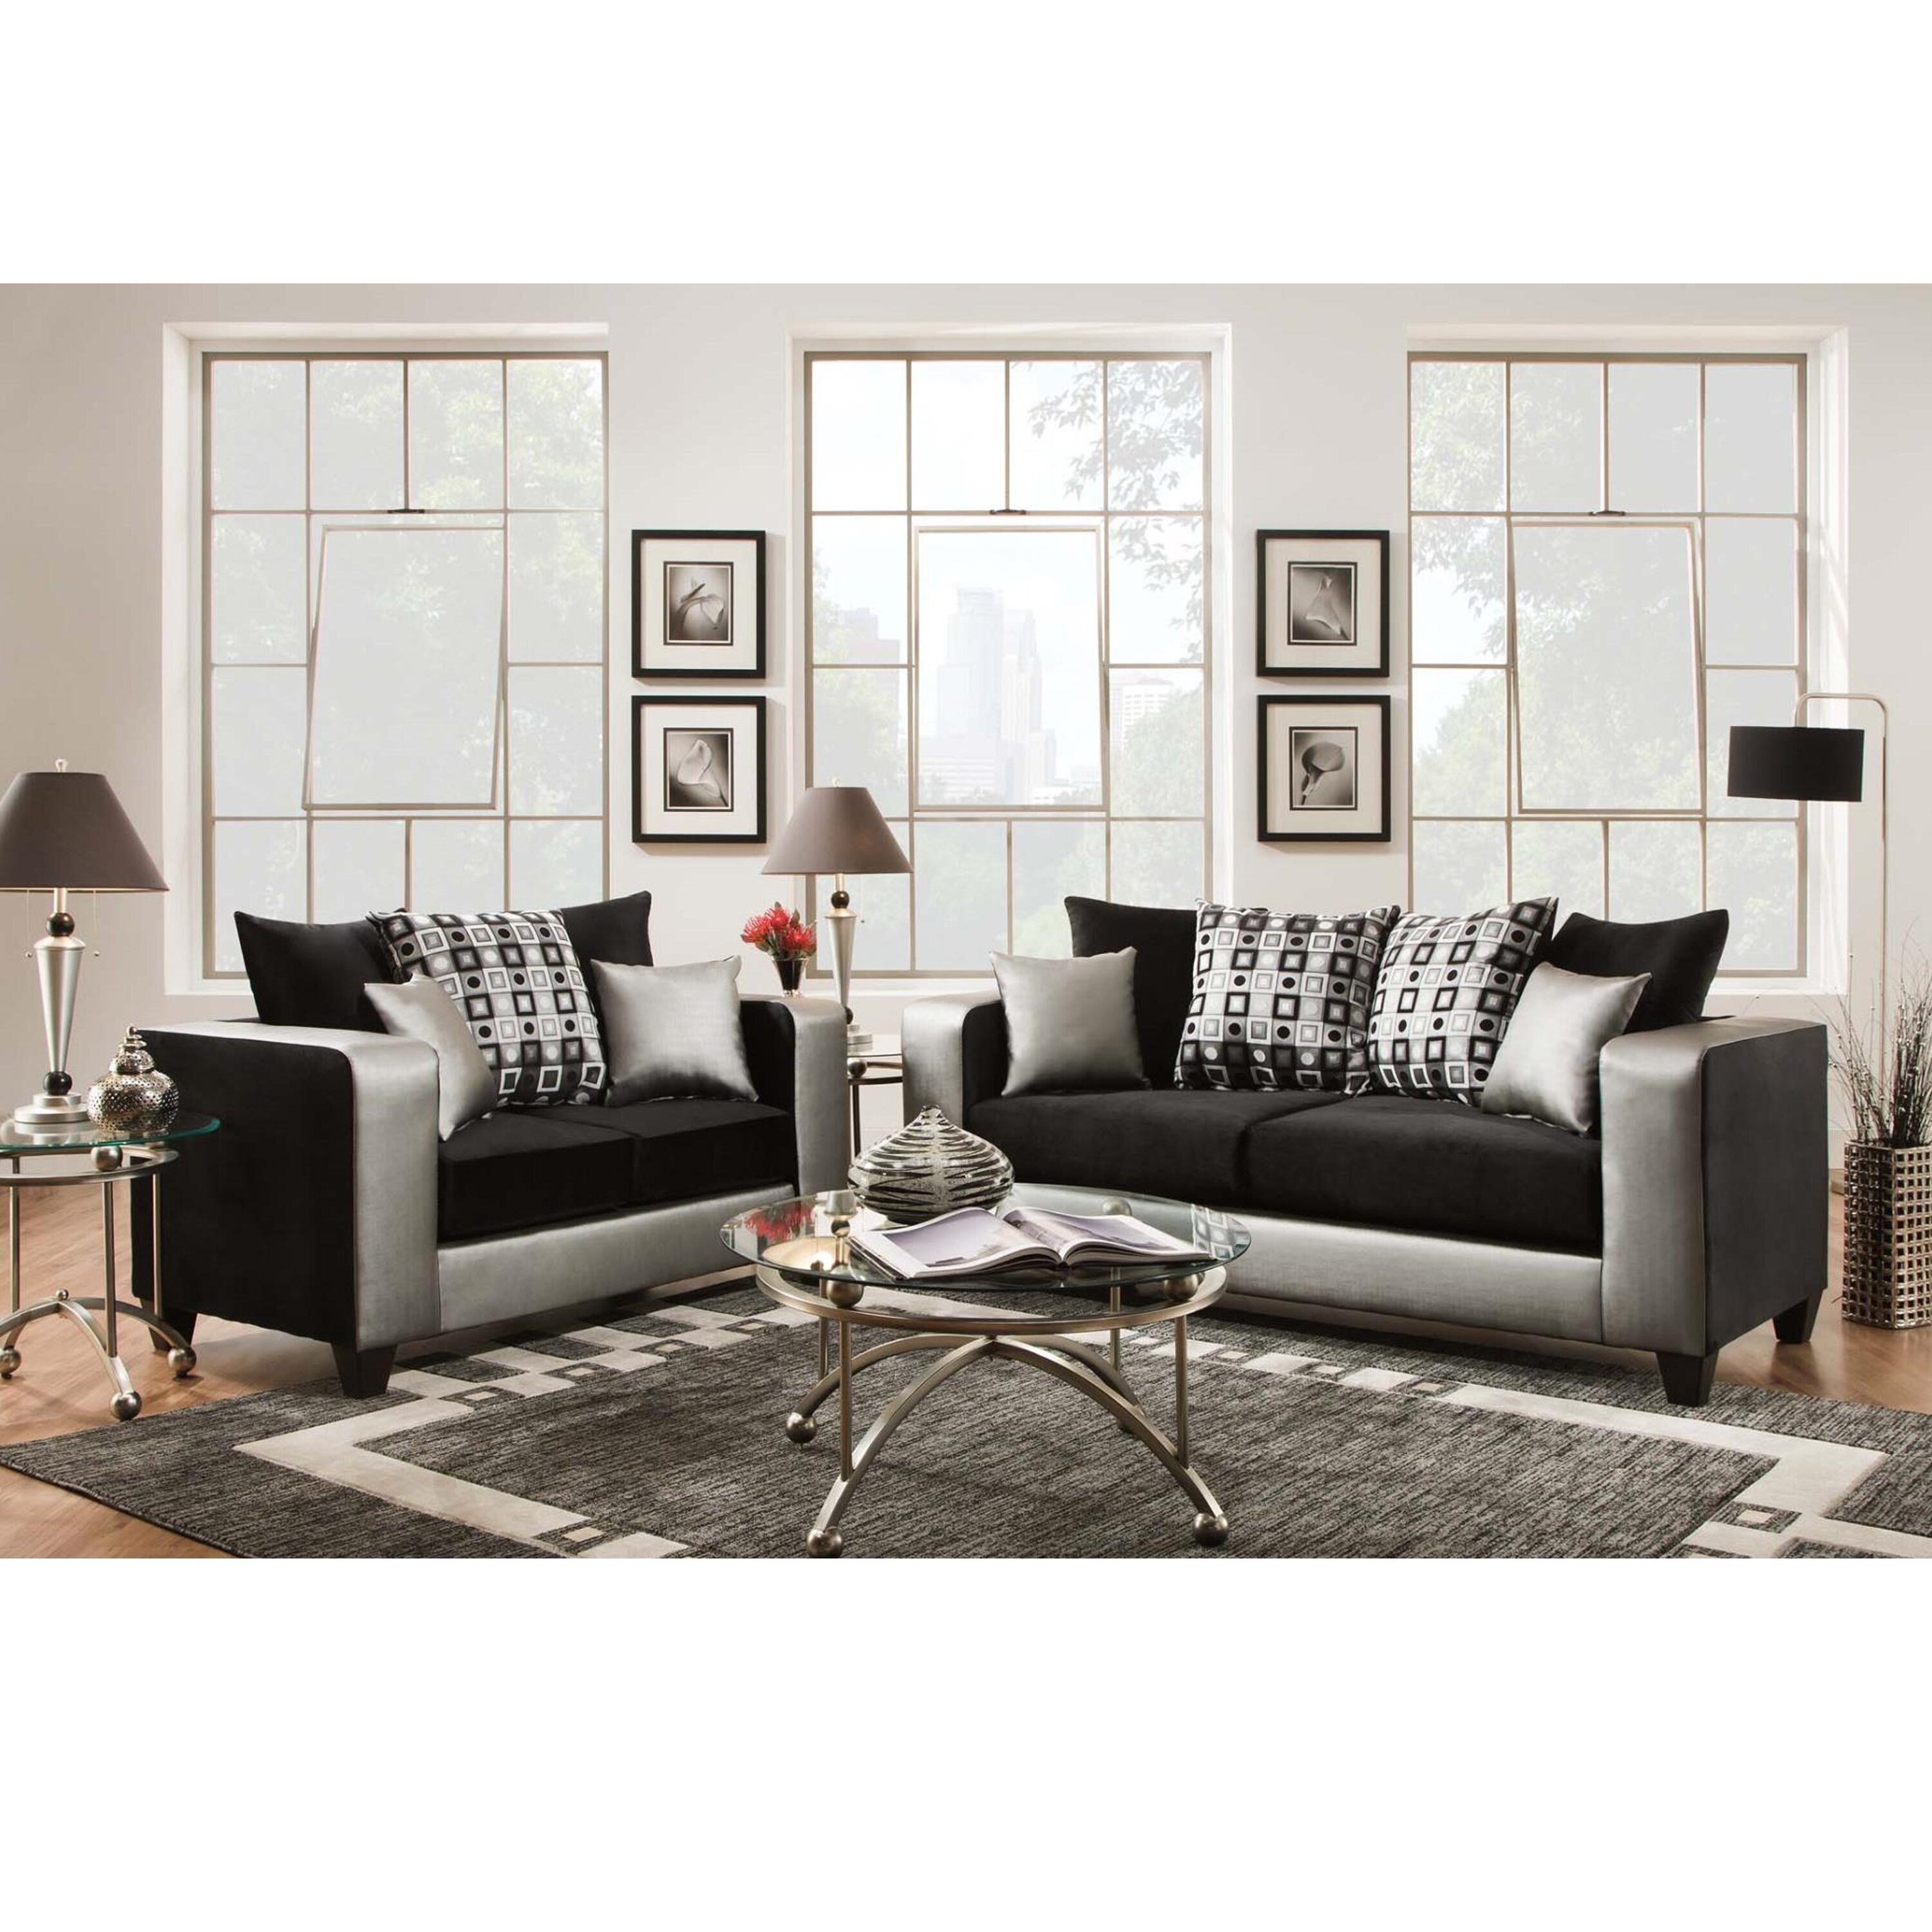 riverstone implosion living room set by flash furniture